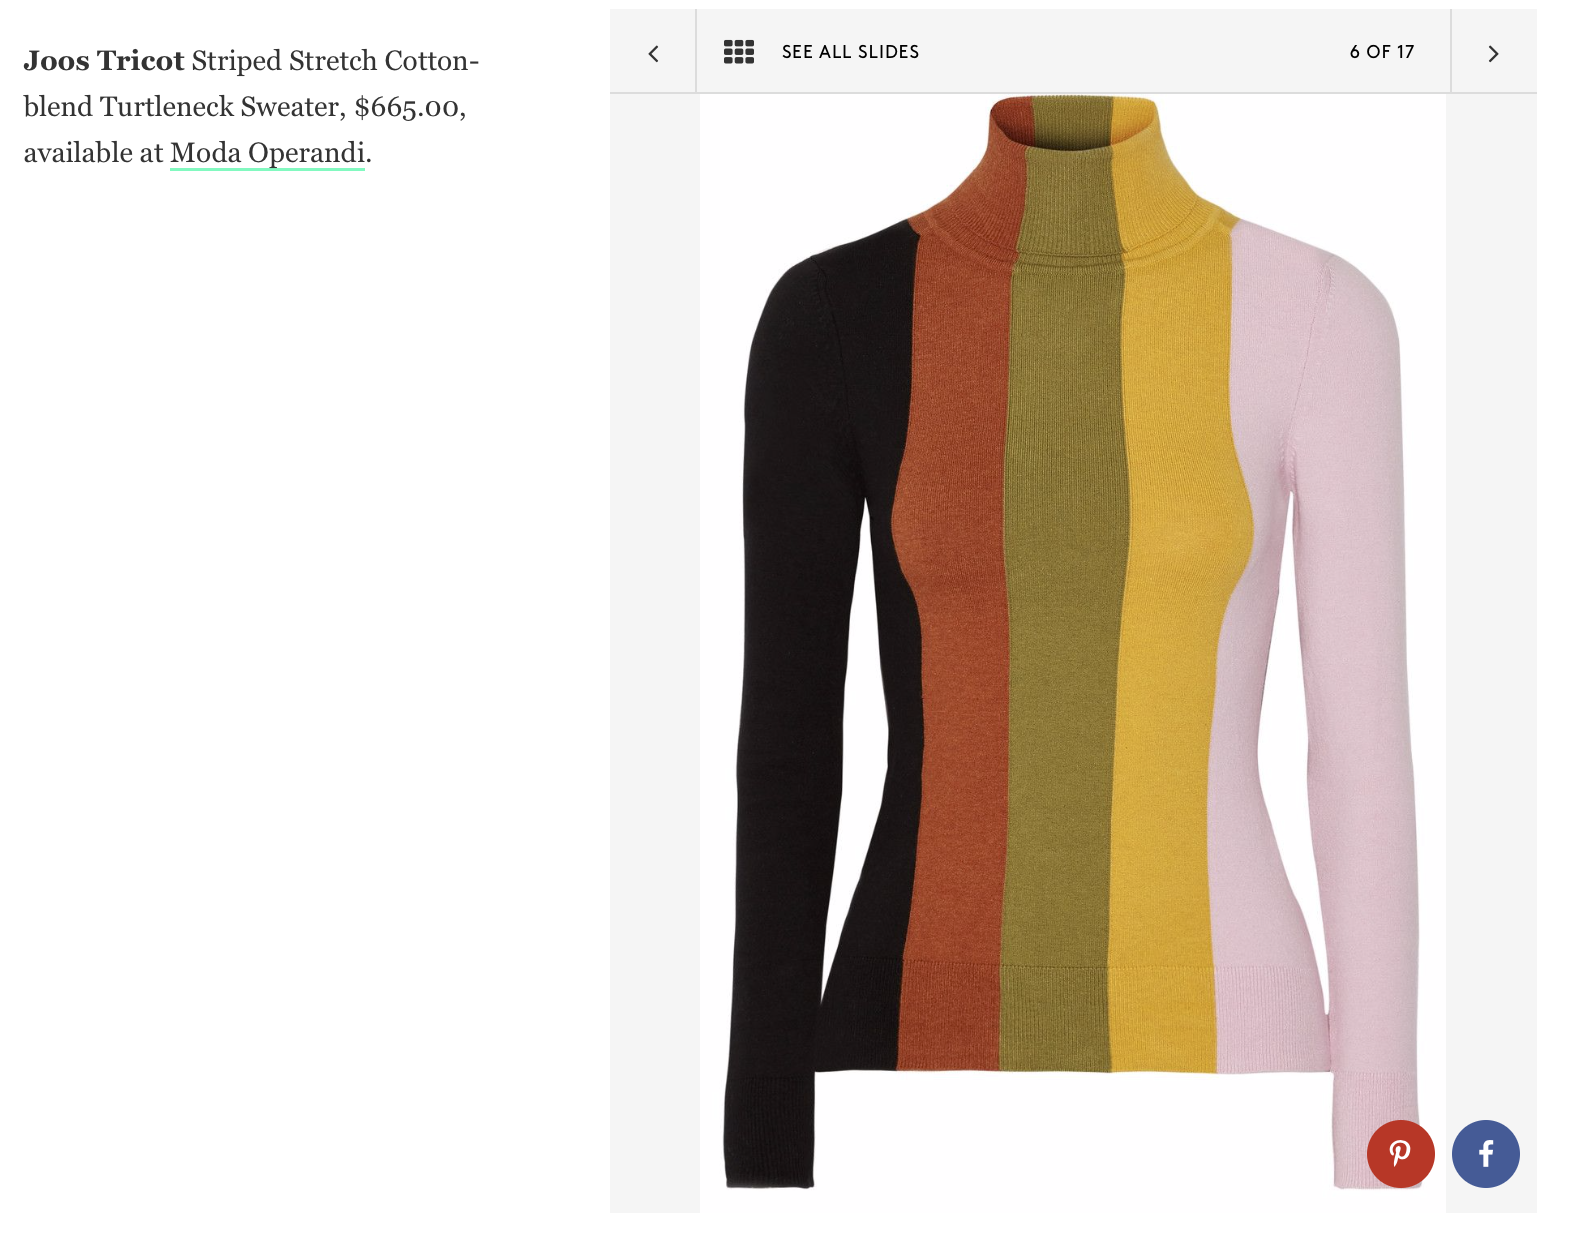 Joos Tricot Striped Stretch Cotton-blend Turtleneck Sweater, $665.00